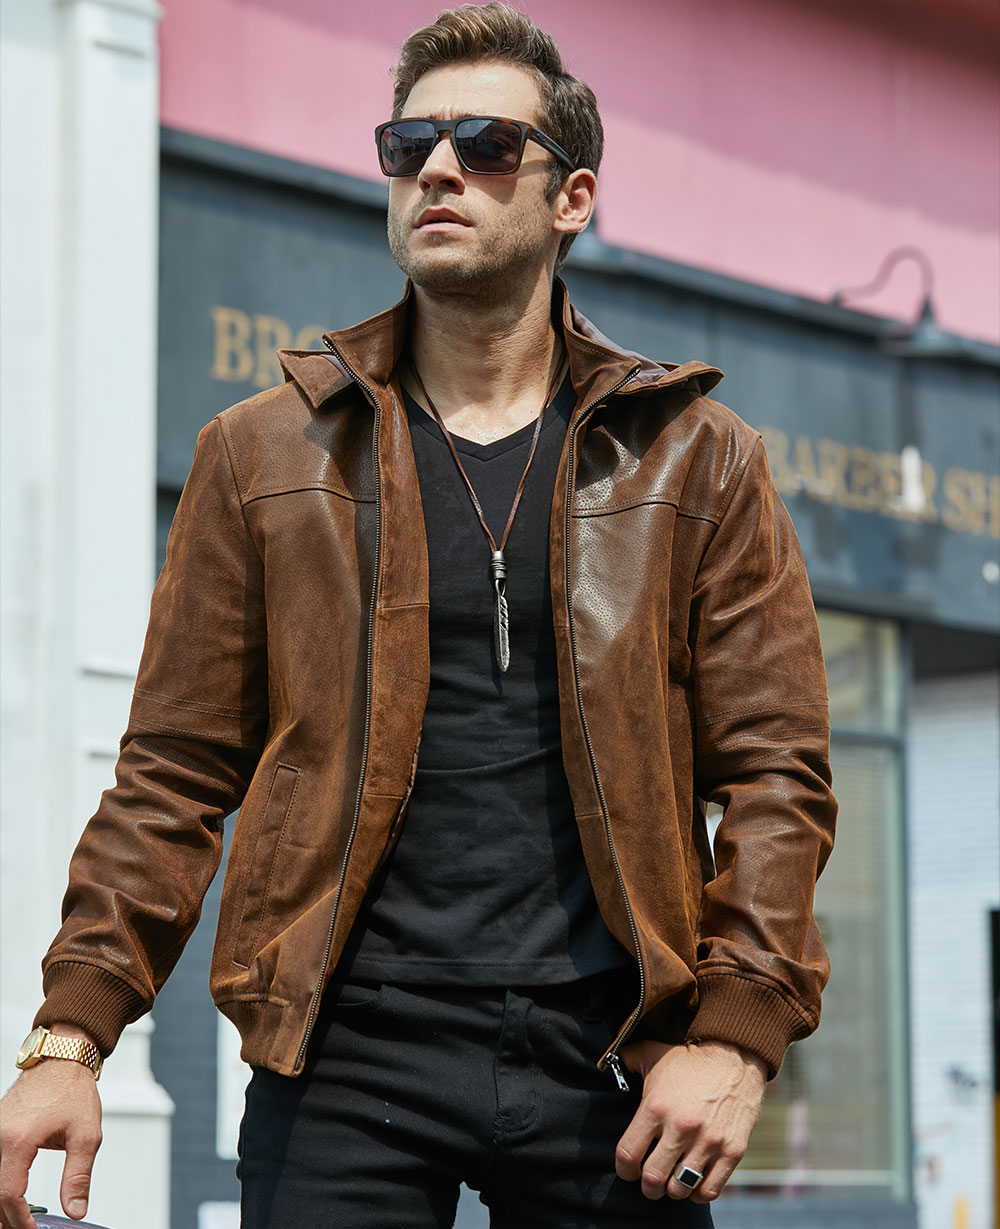 Hc2fc9aa53eaa4409b6bb25a78c9c93fcH New Men's Winter Jacket Made Of Genuine Pigskin Leather With A Hood, Pigskin Motorcycle Jacket, Natural Leather Jacket